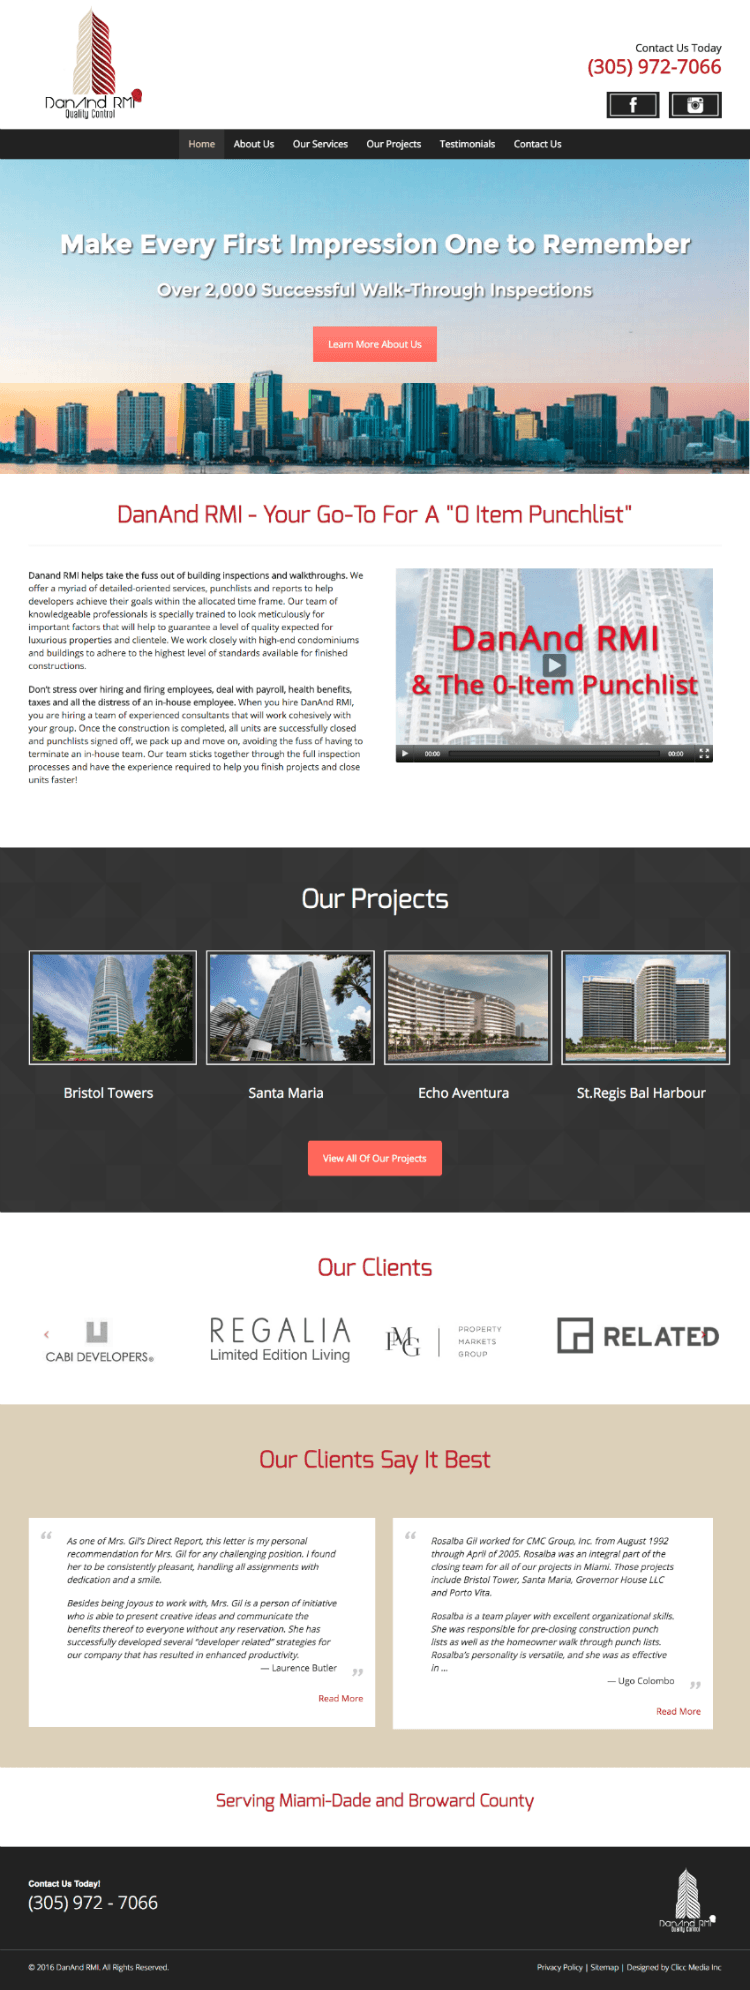 DanAnd RMI new website